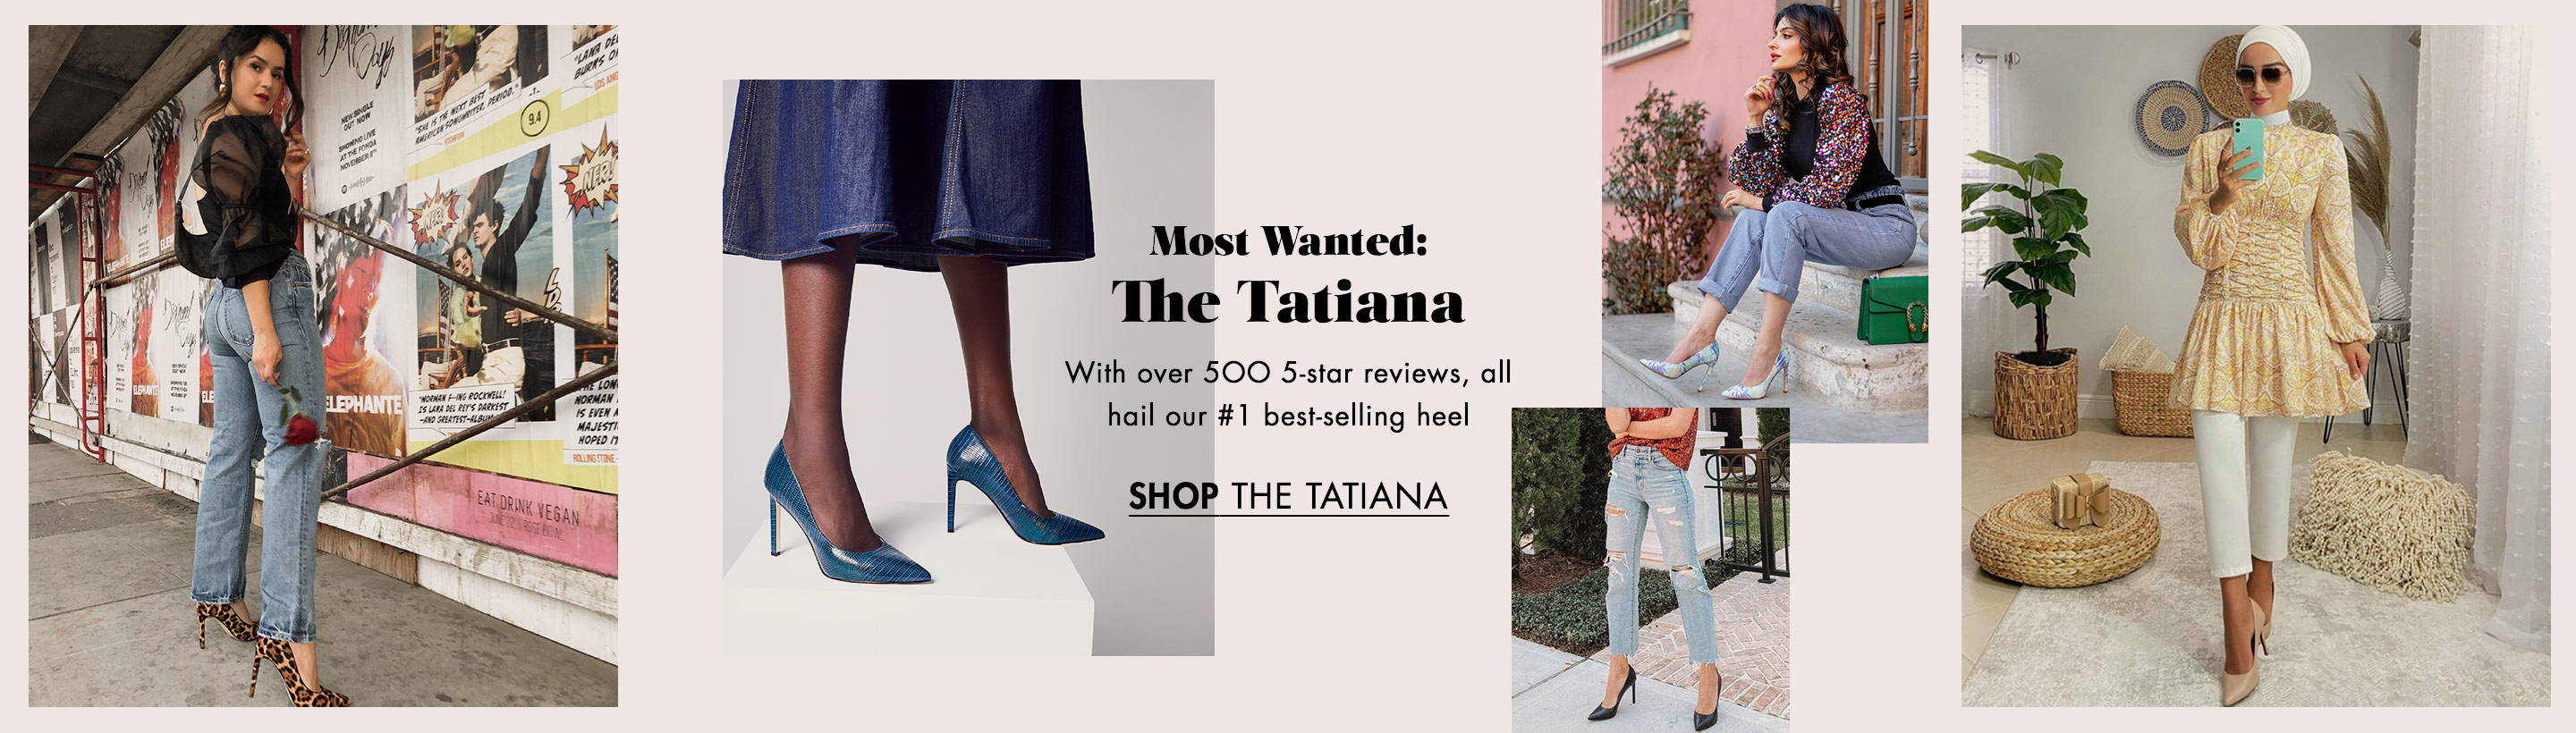 Shop the Tatiana